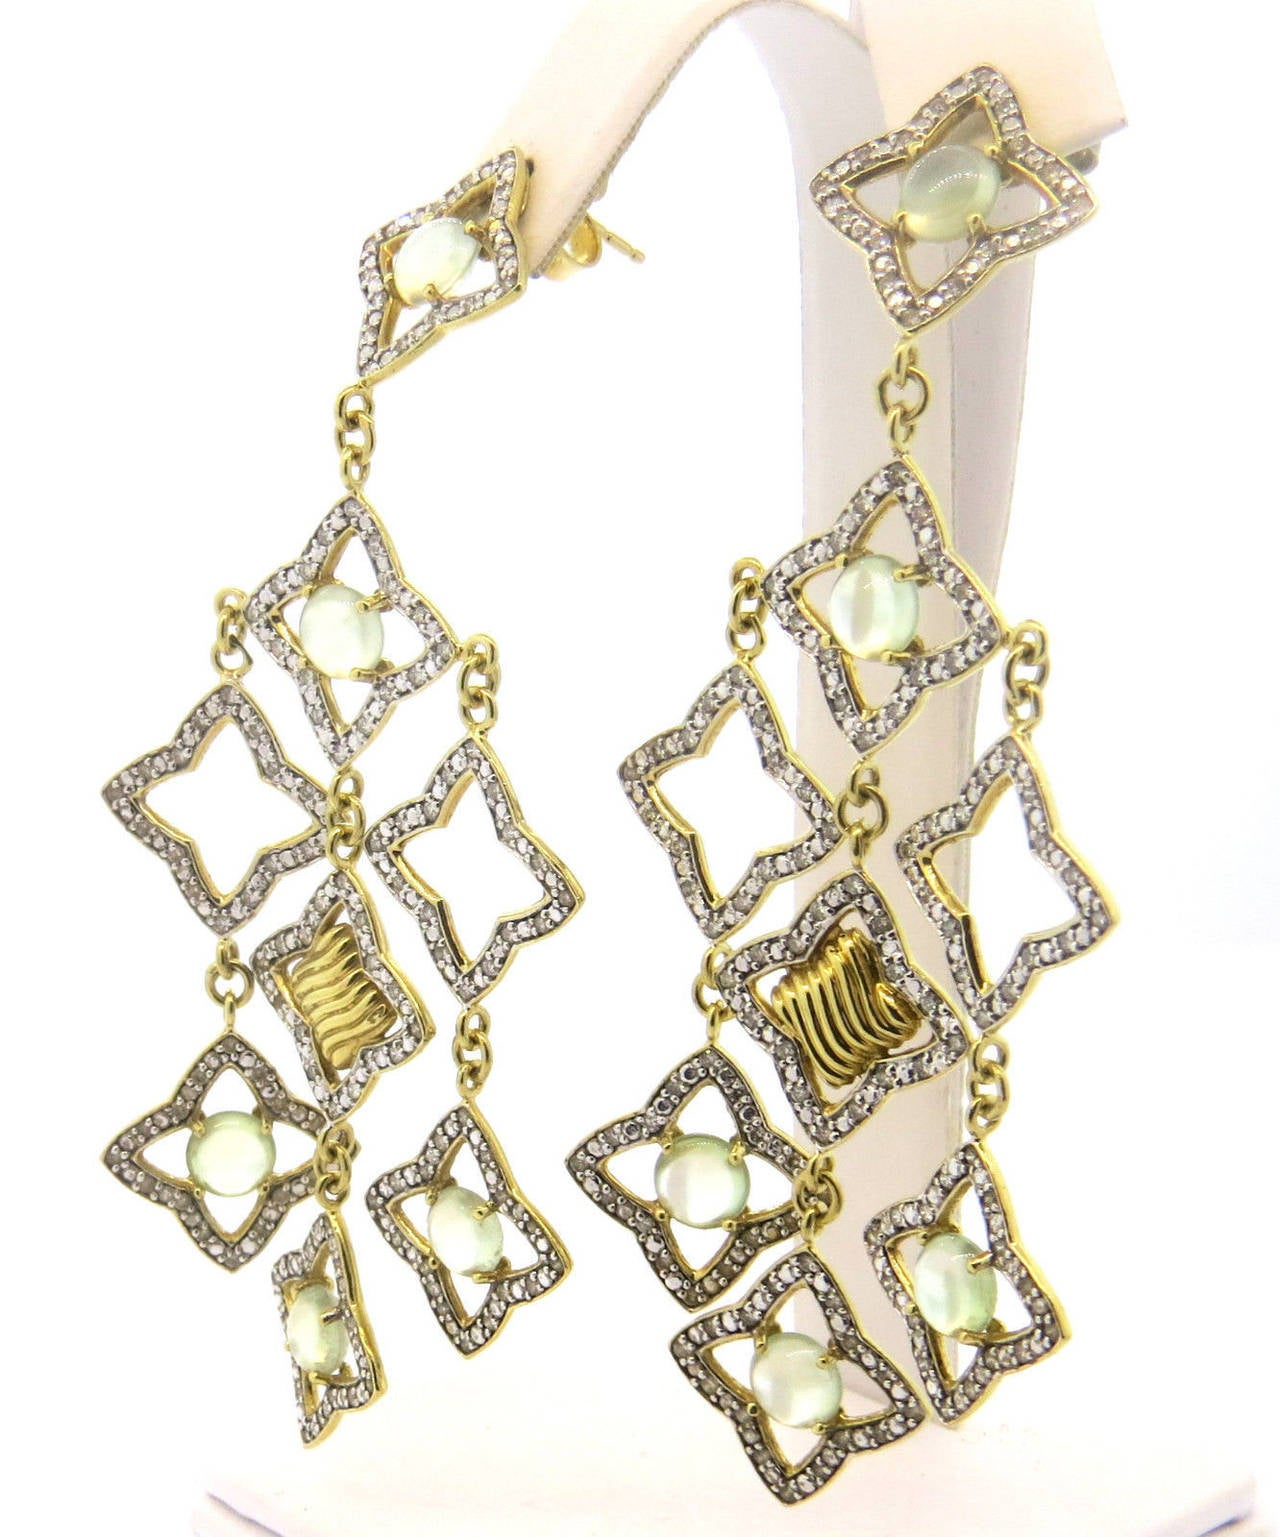 Large 18k Gold Chandelier Earrings Designed By David Yurman For Famous Quatrefoil Collection Featuring